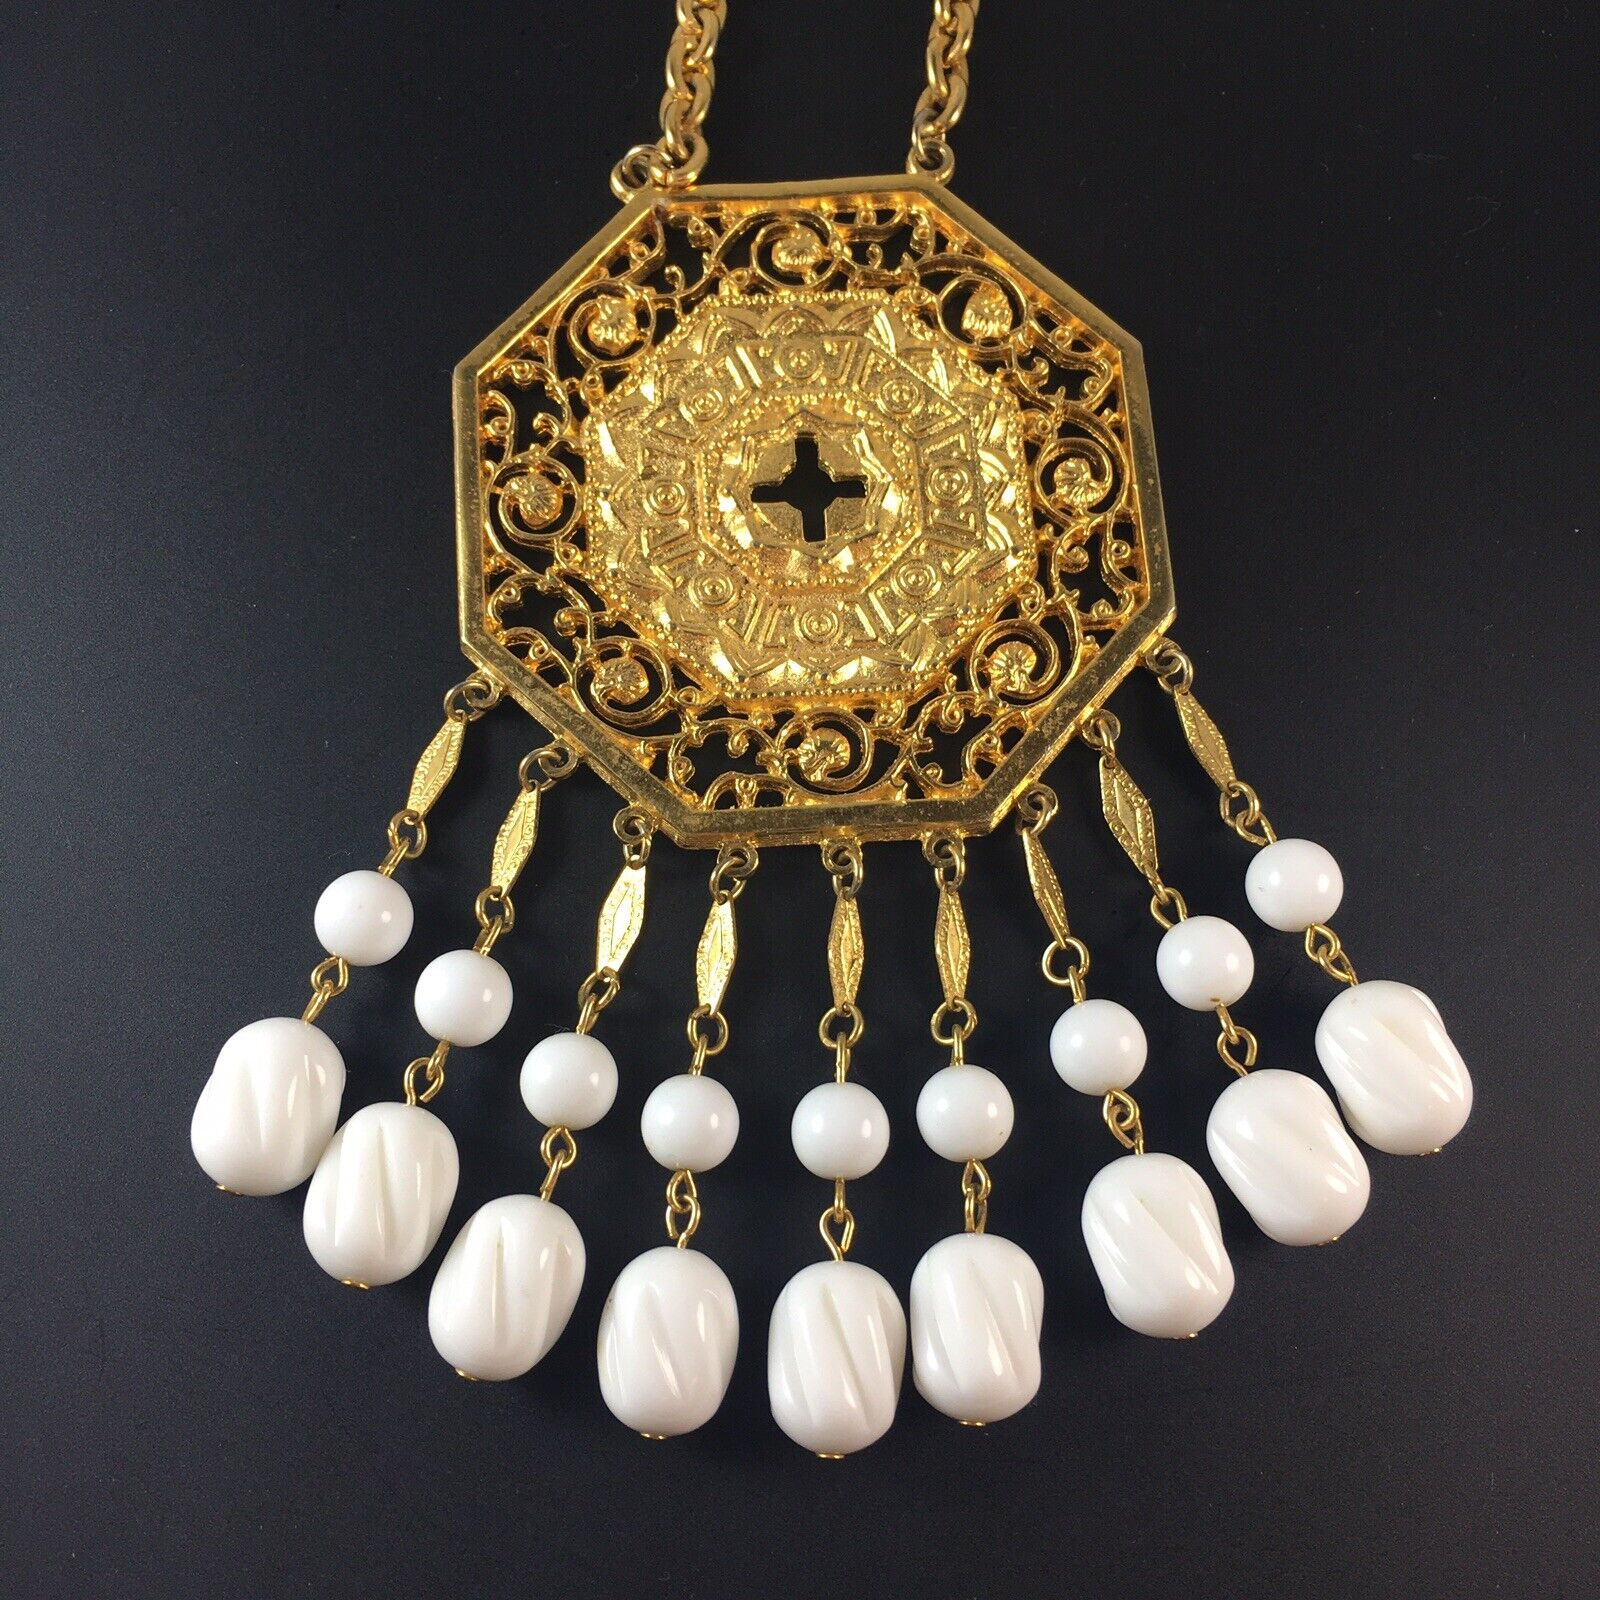 VENDOME Spectacular 5-STRAND AB Crystal and Brushed Gold Necklace and Earrings!